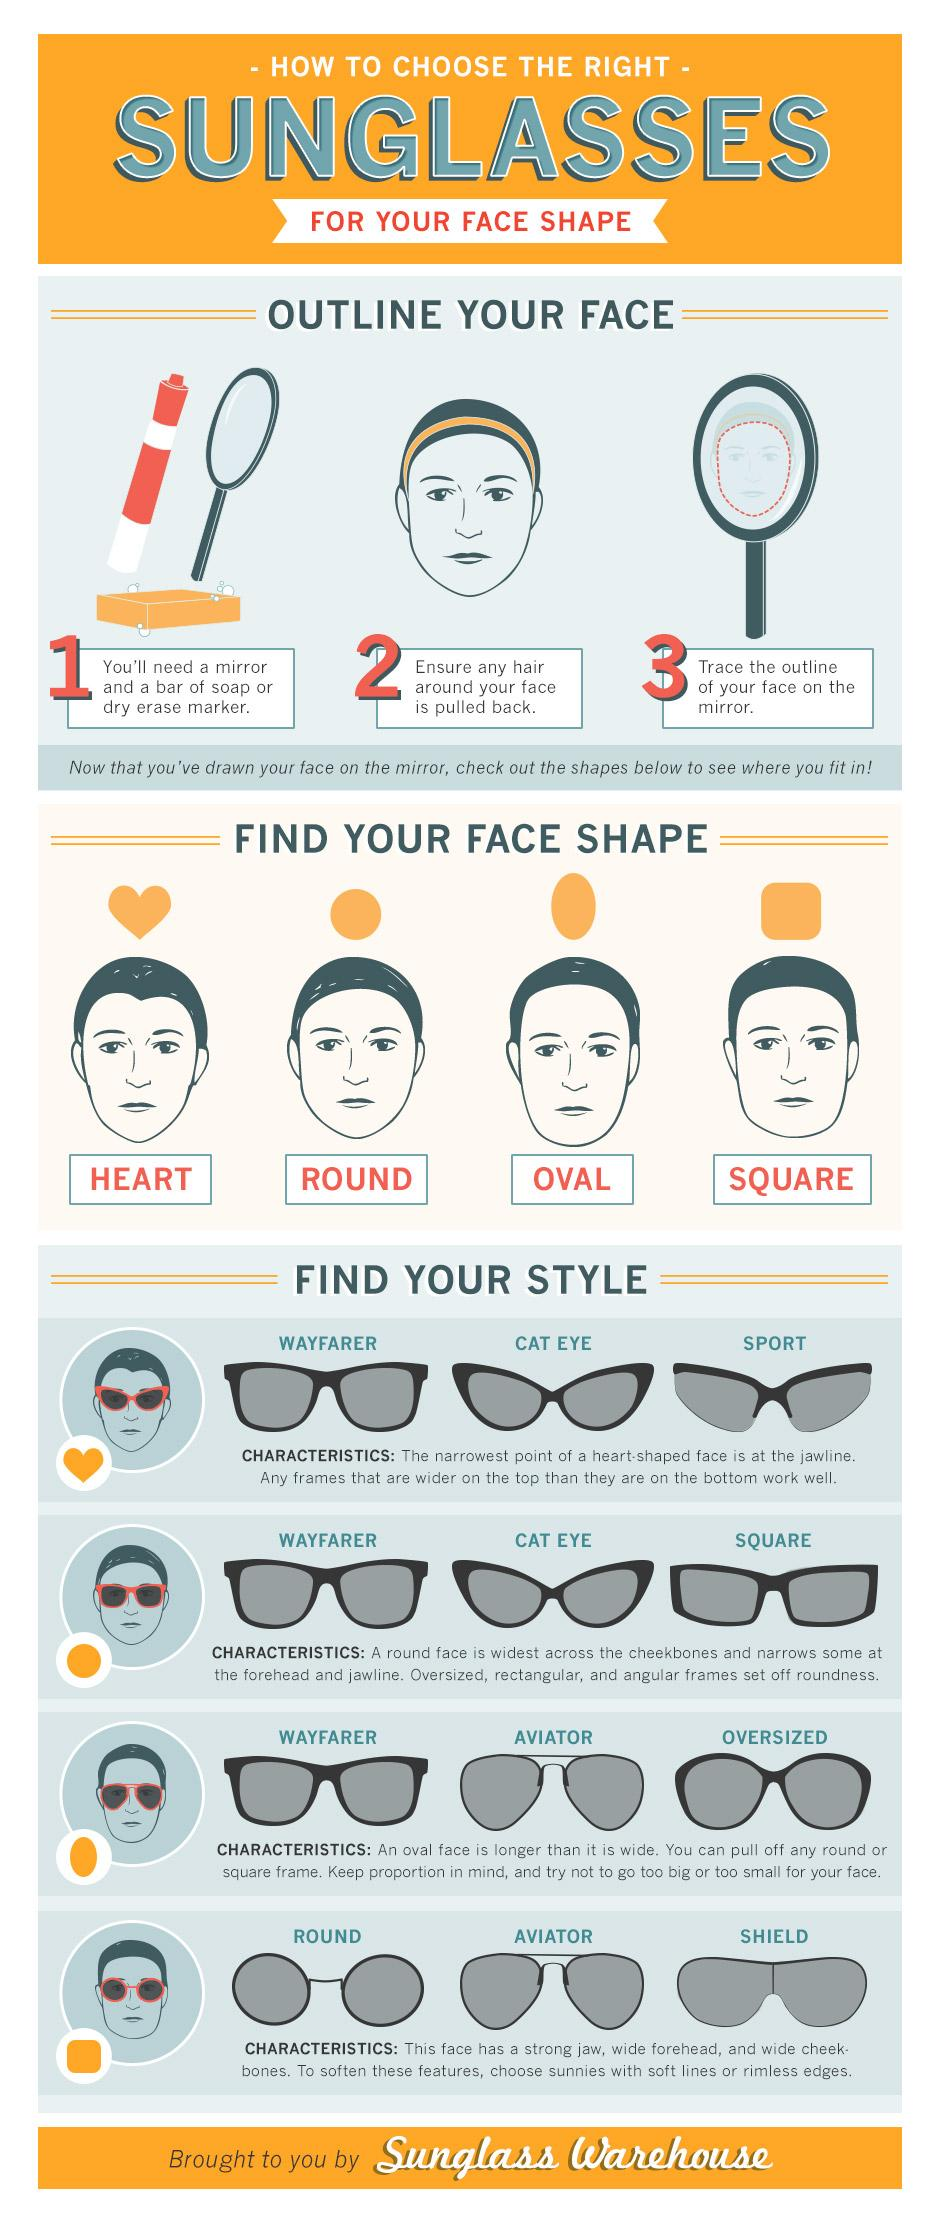 Finding the Right Sunglasses for Your Face Shape - Paperblog